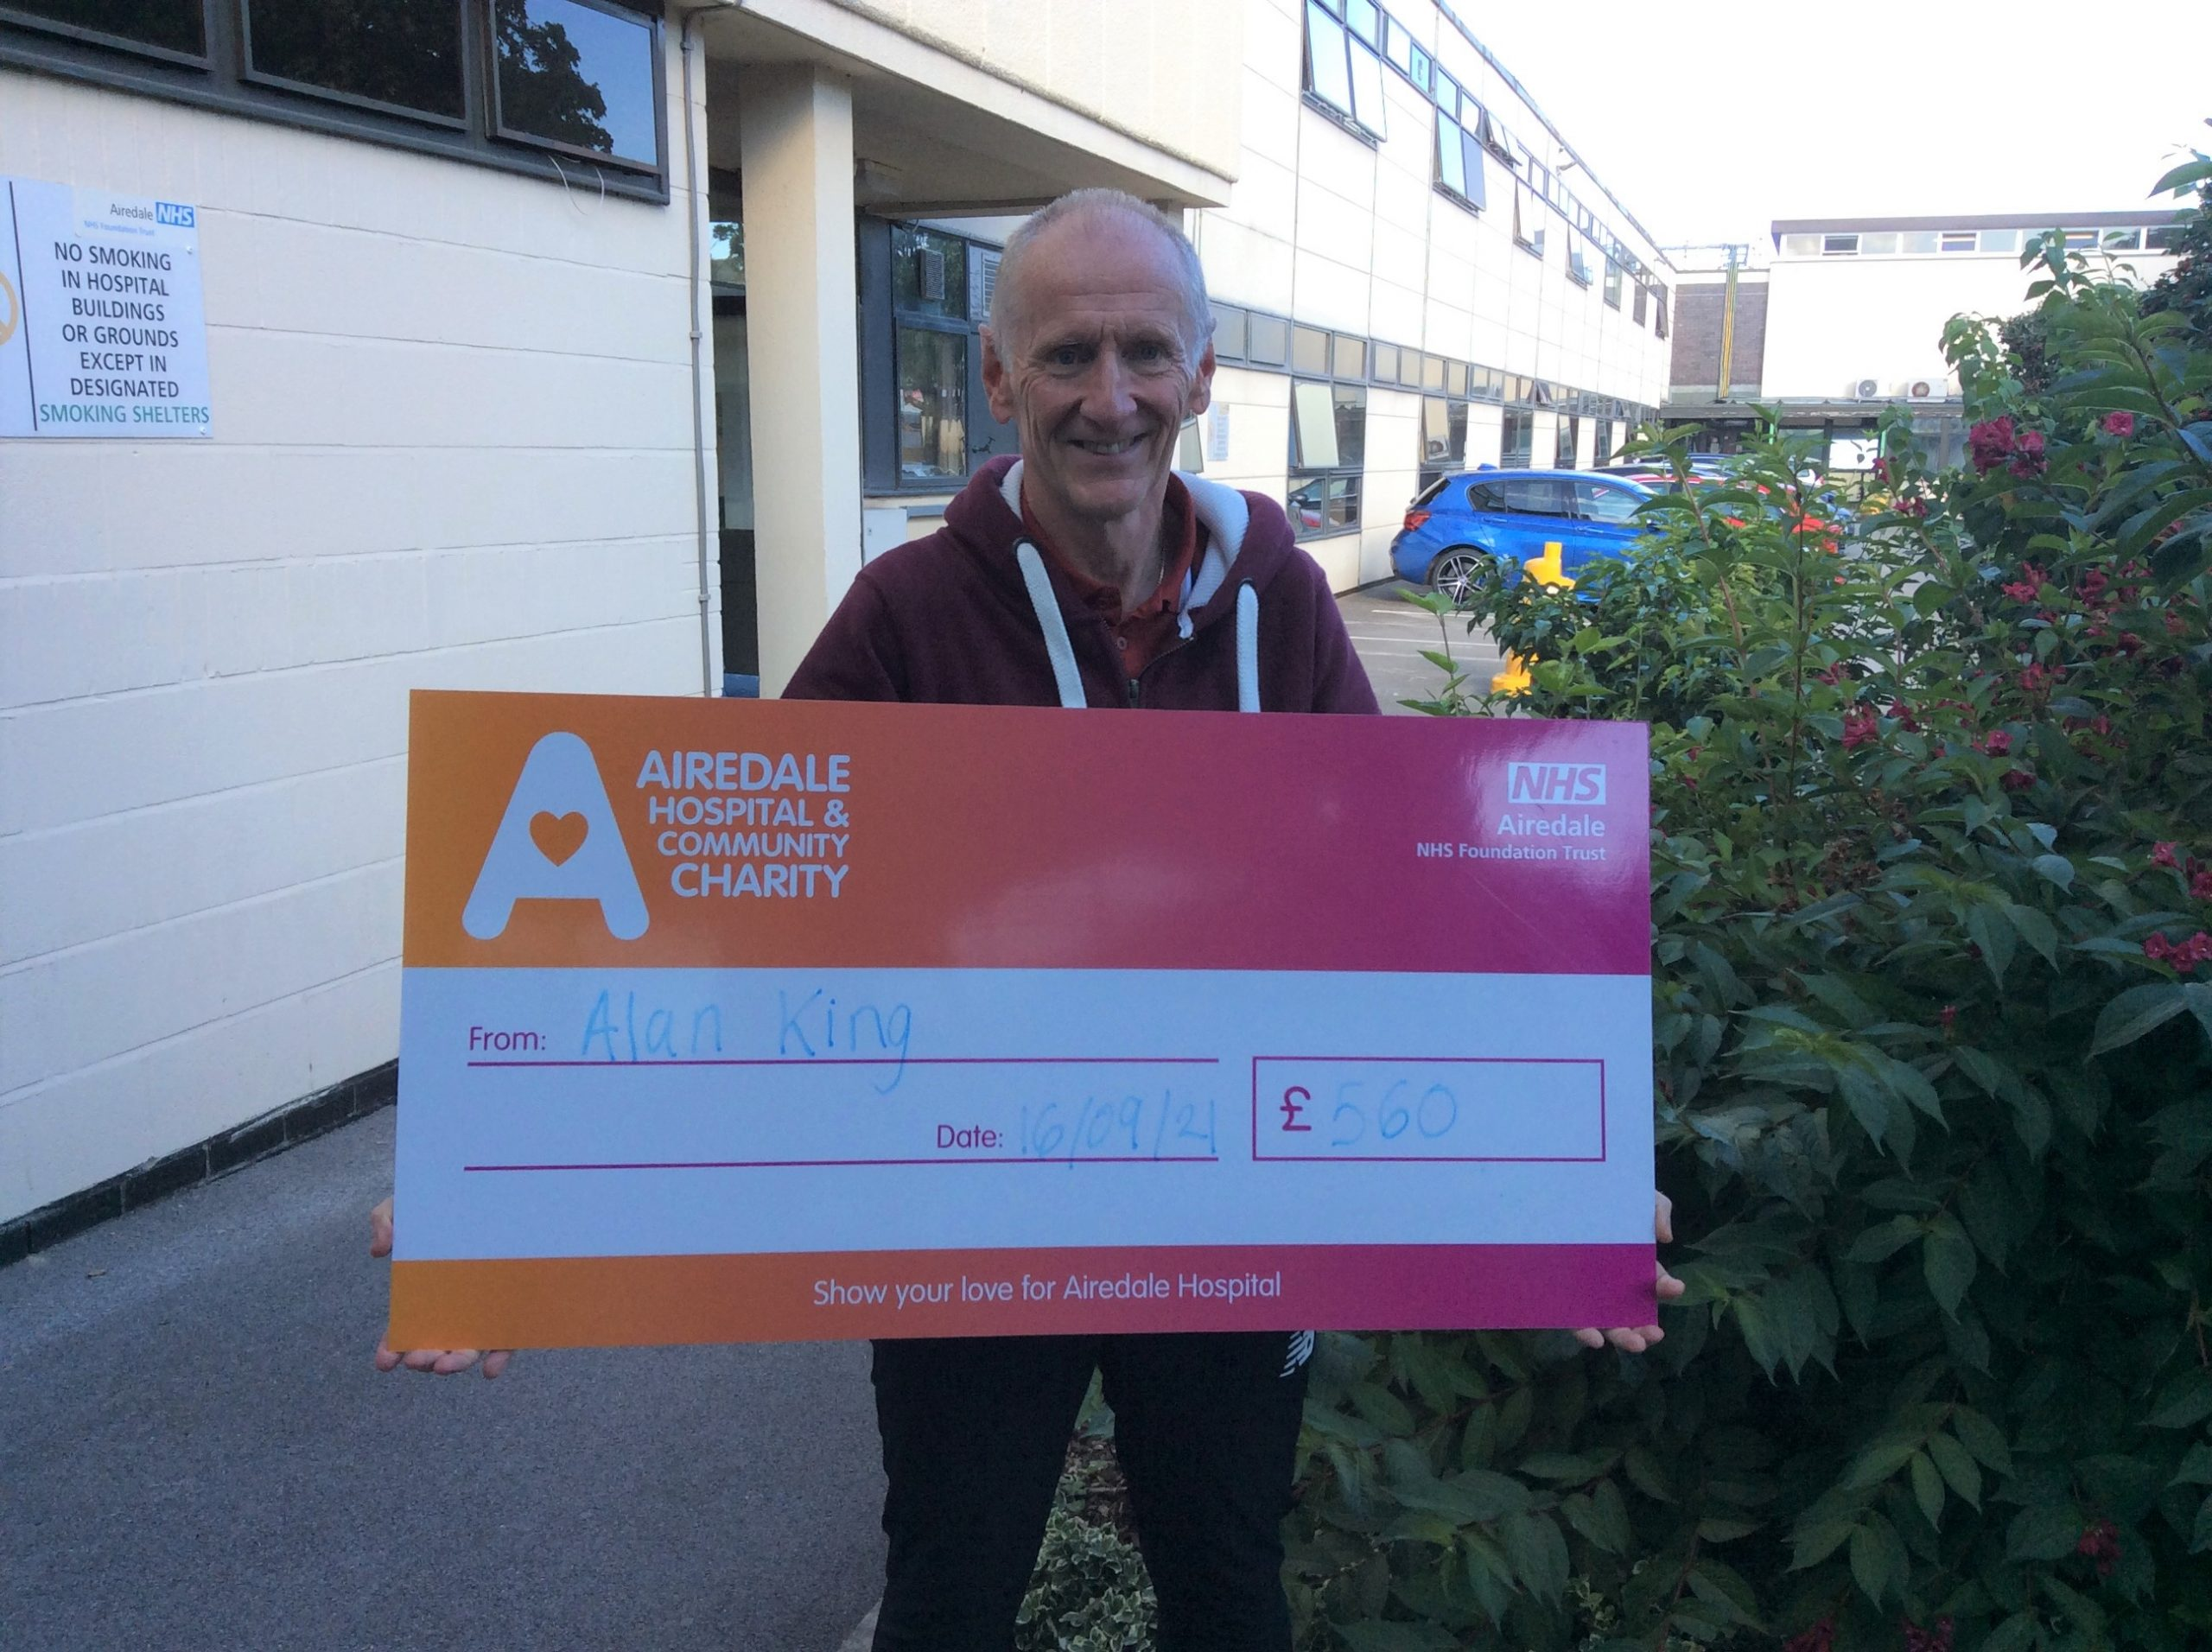 Alan King donating the money he raised for Airedale